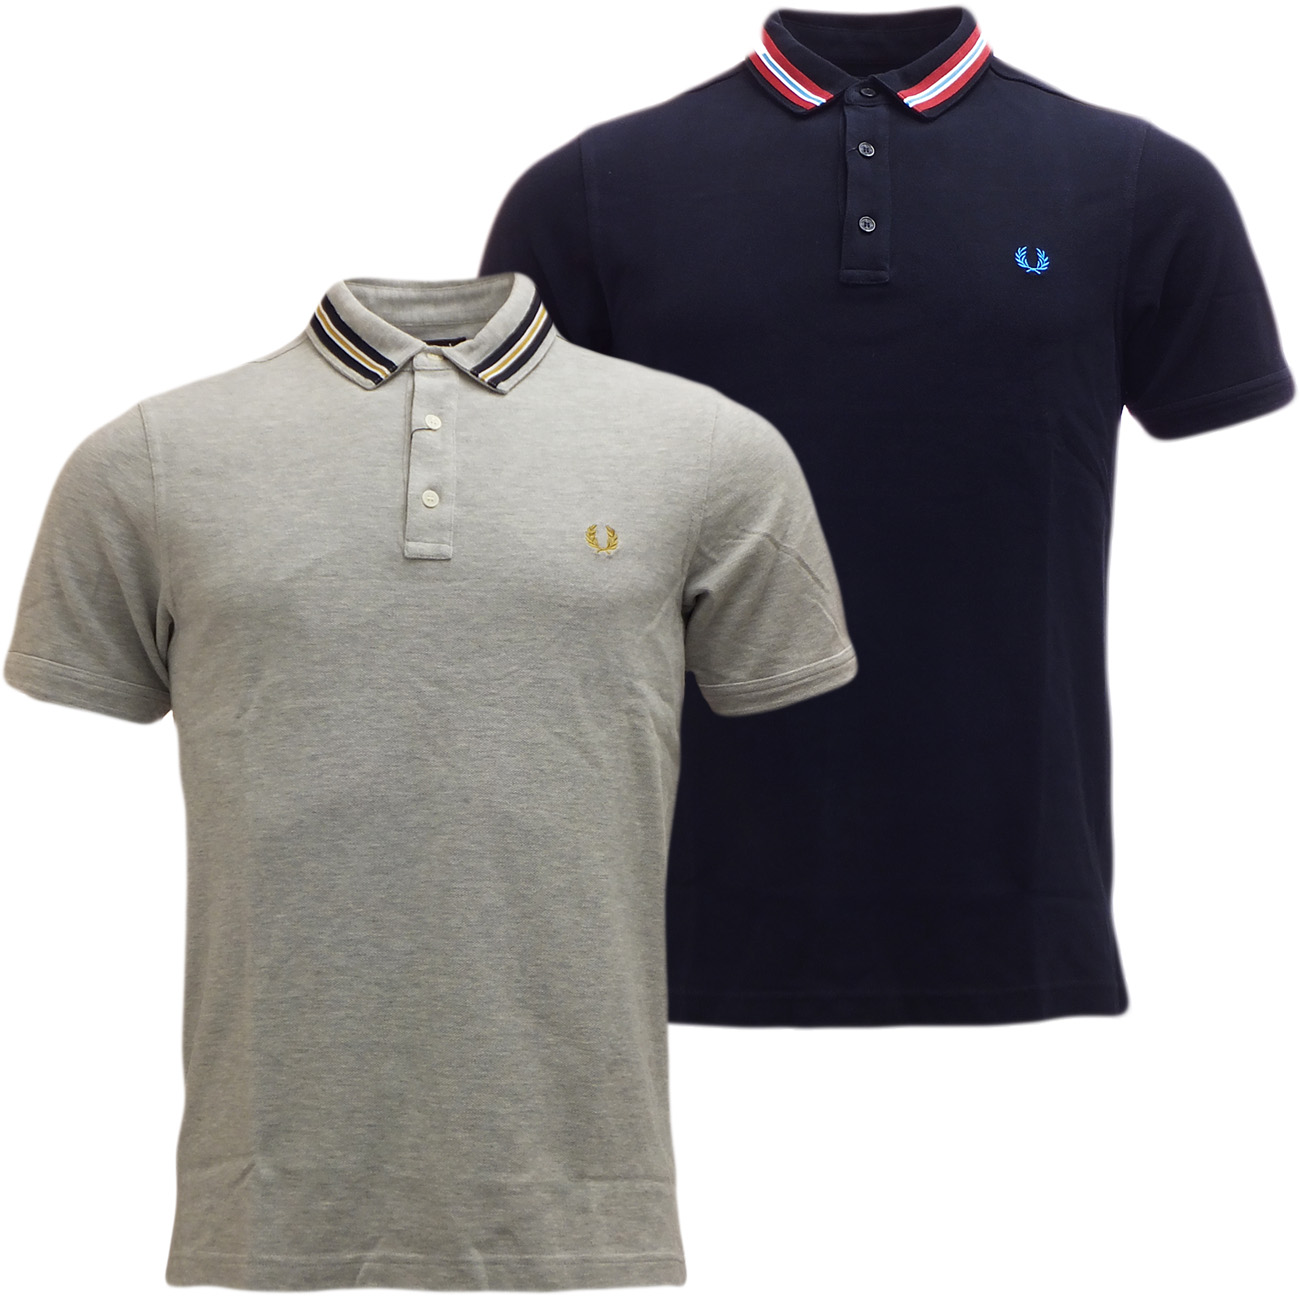 Fred Perry Polo Shirt Stripe Collar Pique Polo New | Polos ...